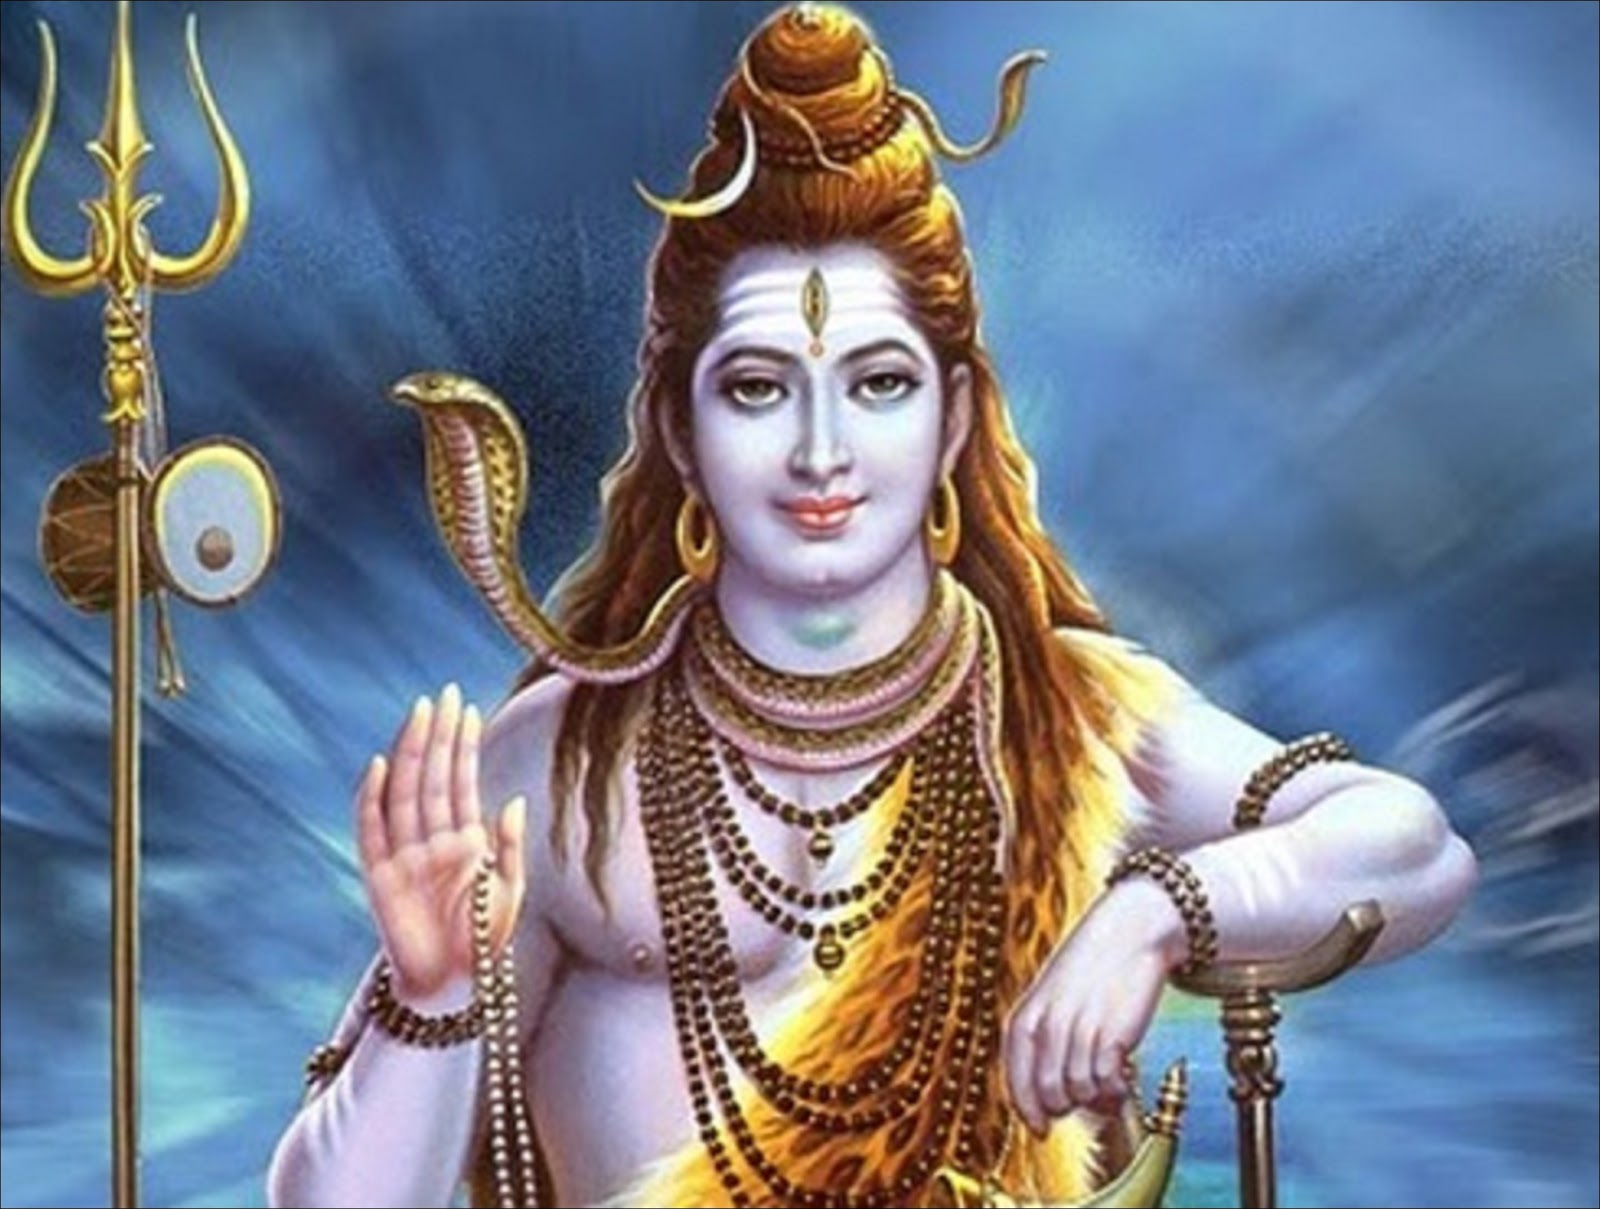 Wallpapers of lord shiva in 3d - celena hollis 5k pictures